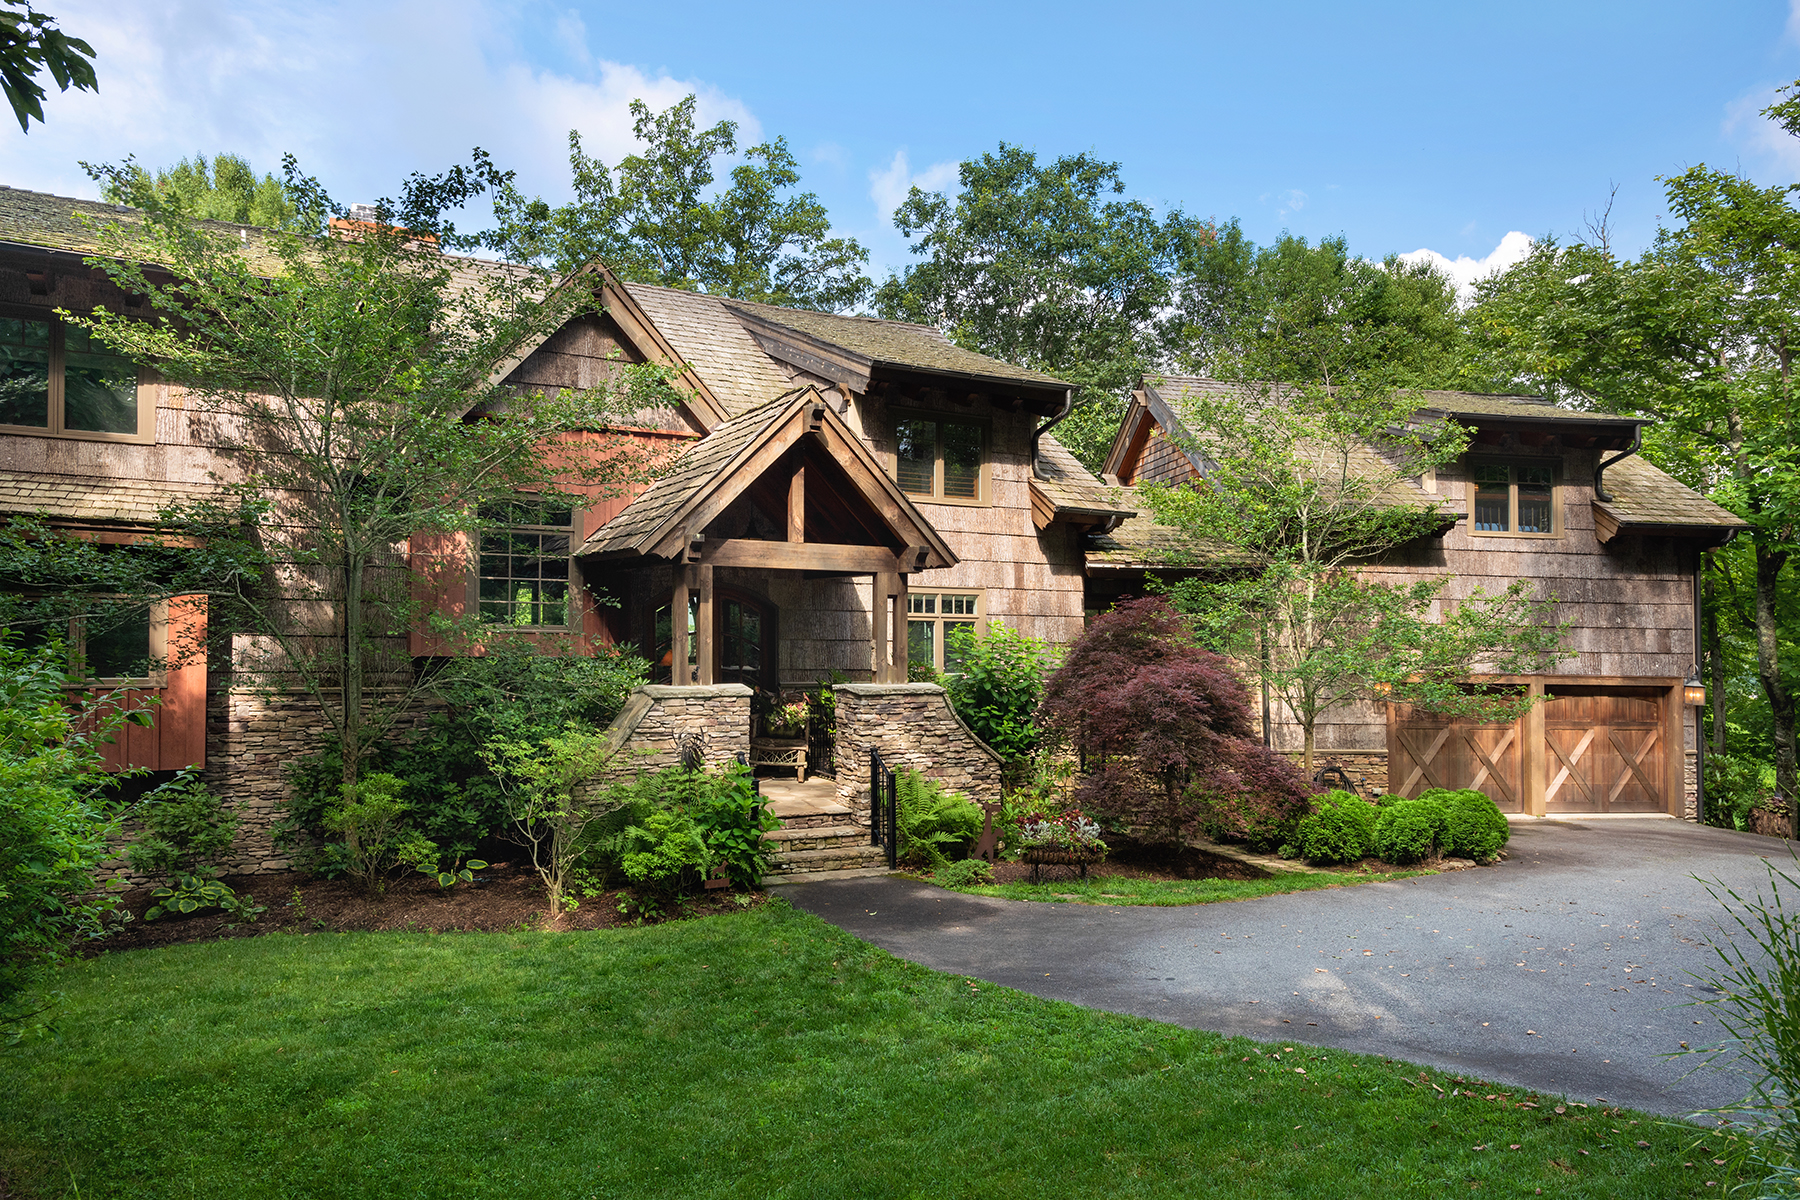 Single Family Homes for Sale at FIRETHORN - BLOWING ROCK 160 Tanglewood Trl Blowing Rock, North Carolina 28605 United States